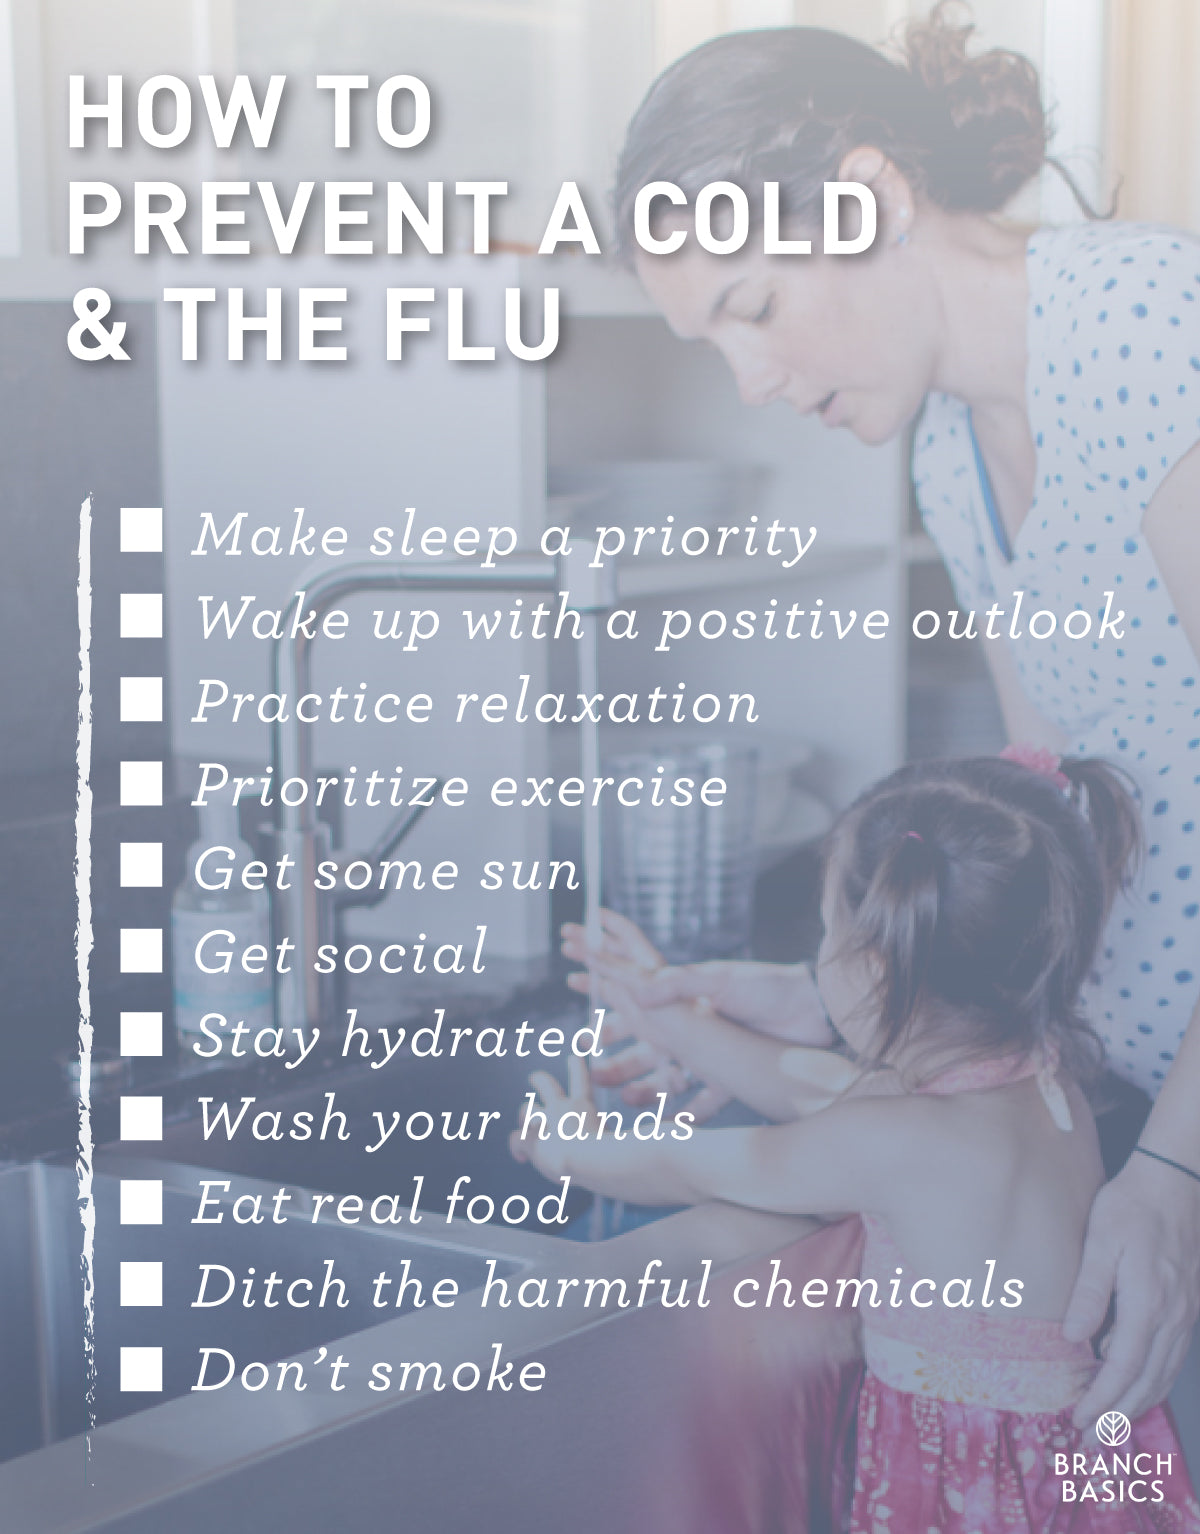 Branch Basics Sensible and Modern Cold and Flu Prevention Tips